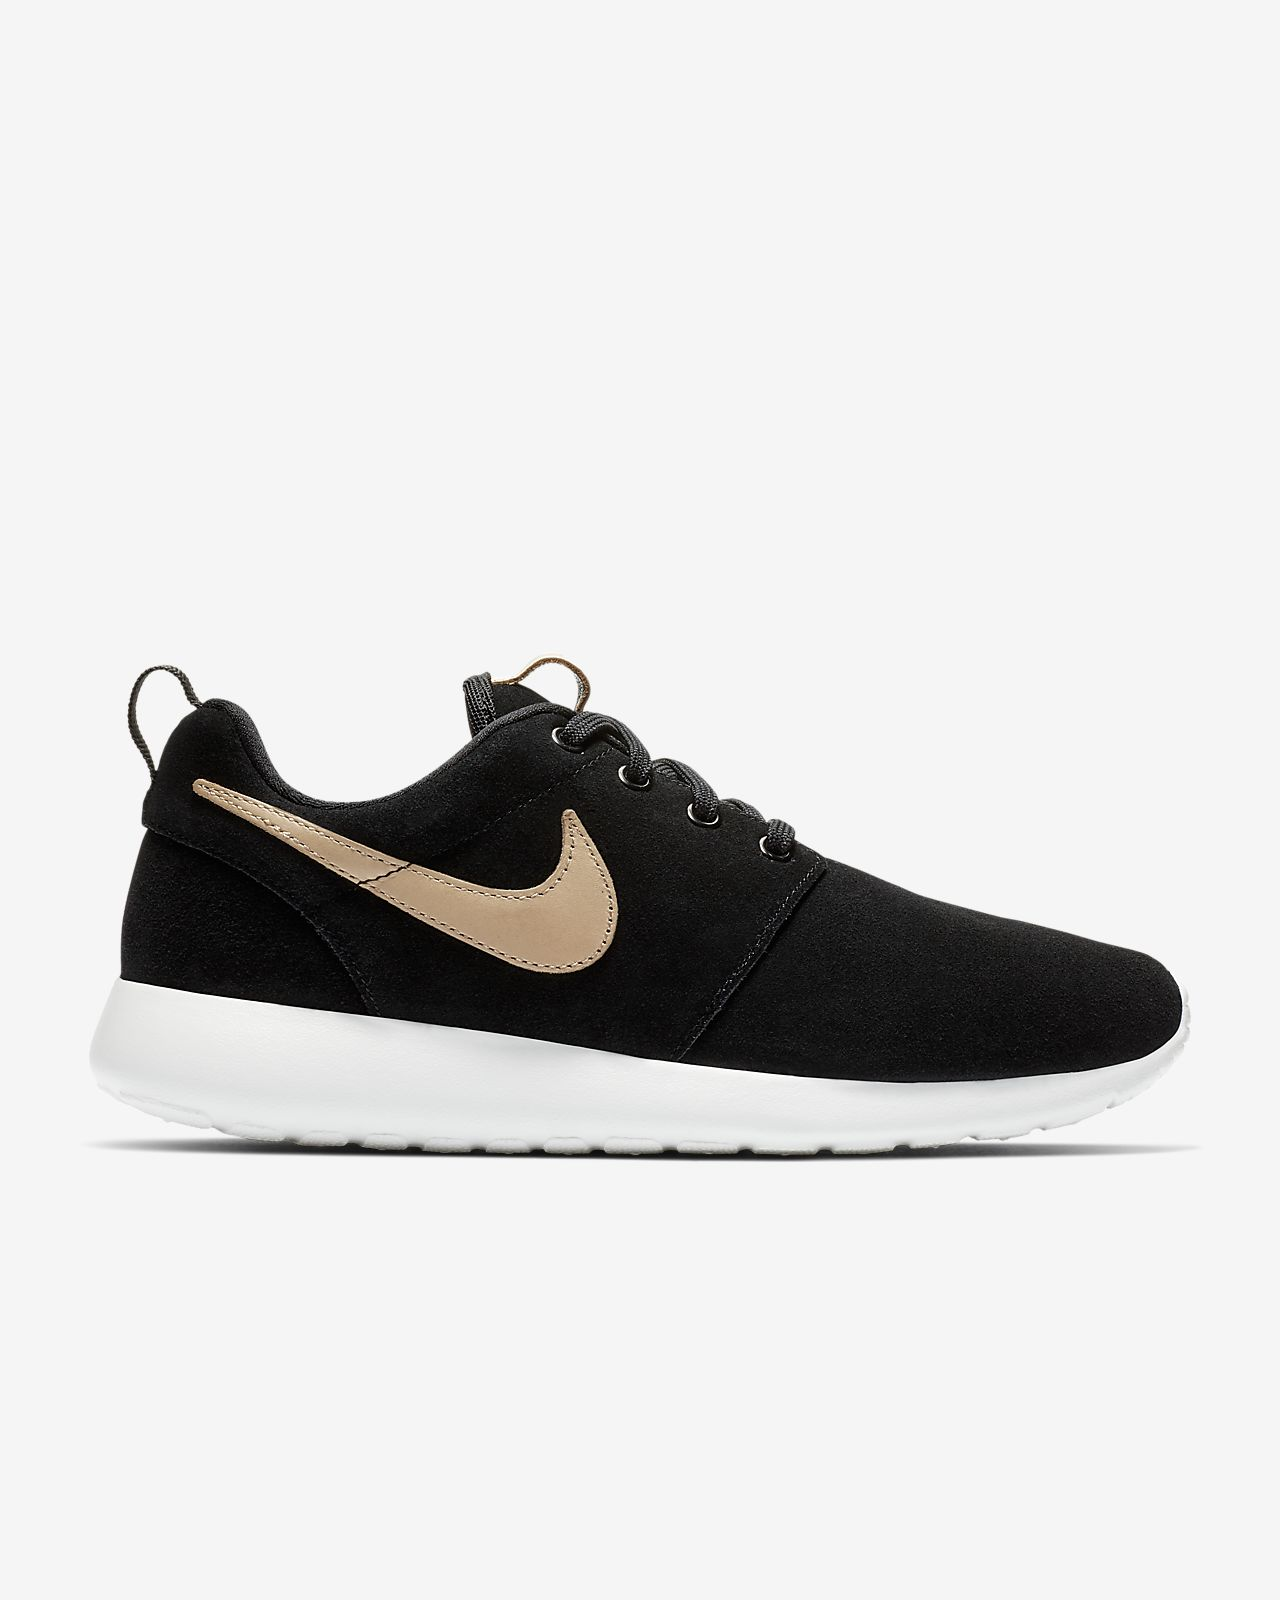 huge discount 022a9 a1f6b ... Nike Roshe One Premium Women s Shoe